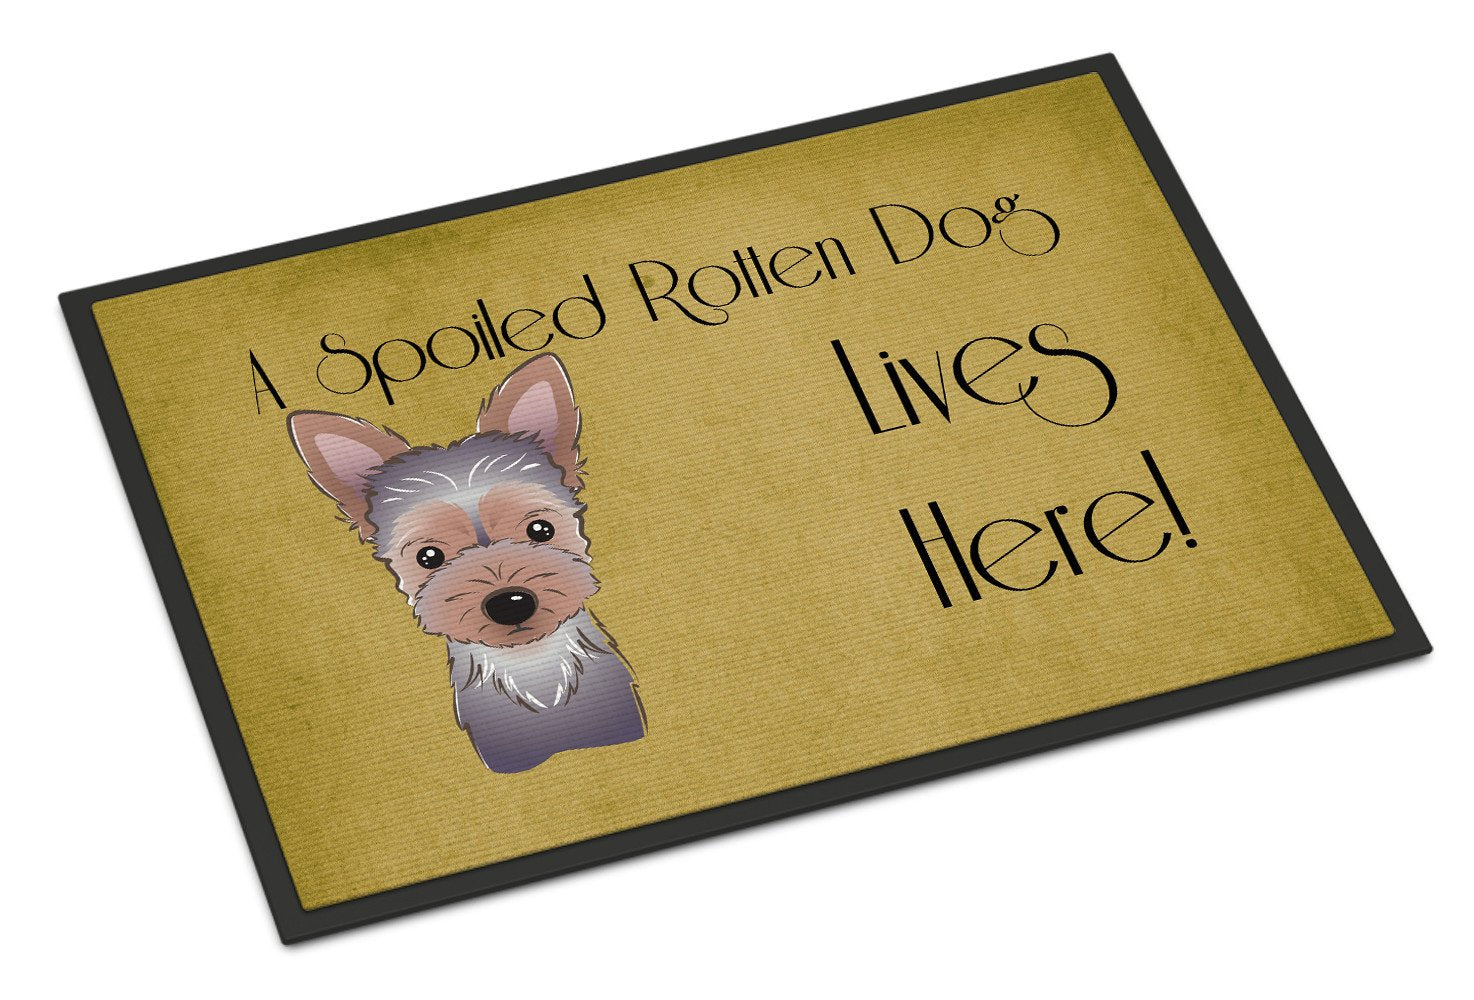 Yorkie Puppy Spoiled Dog Lives Here Indoor or Outdoor Mat 18x27 BB1480MAT - the-store.com